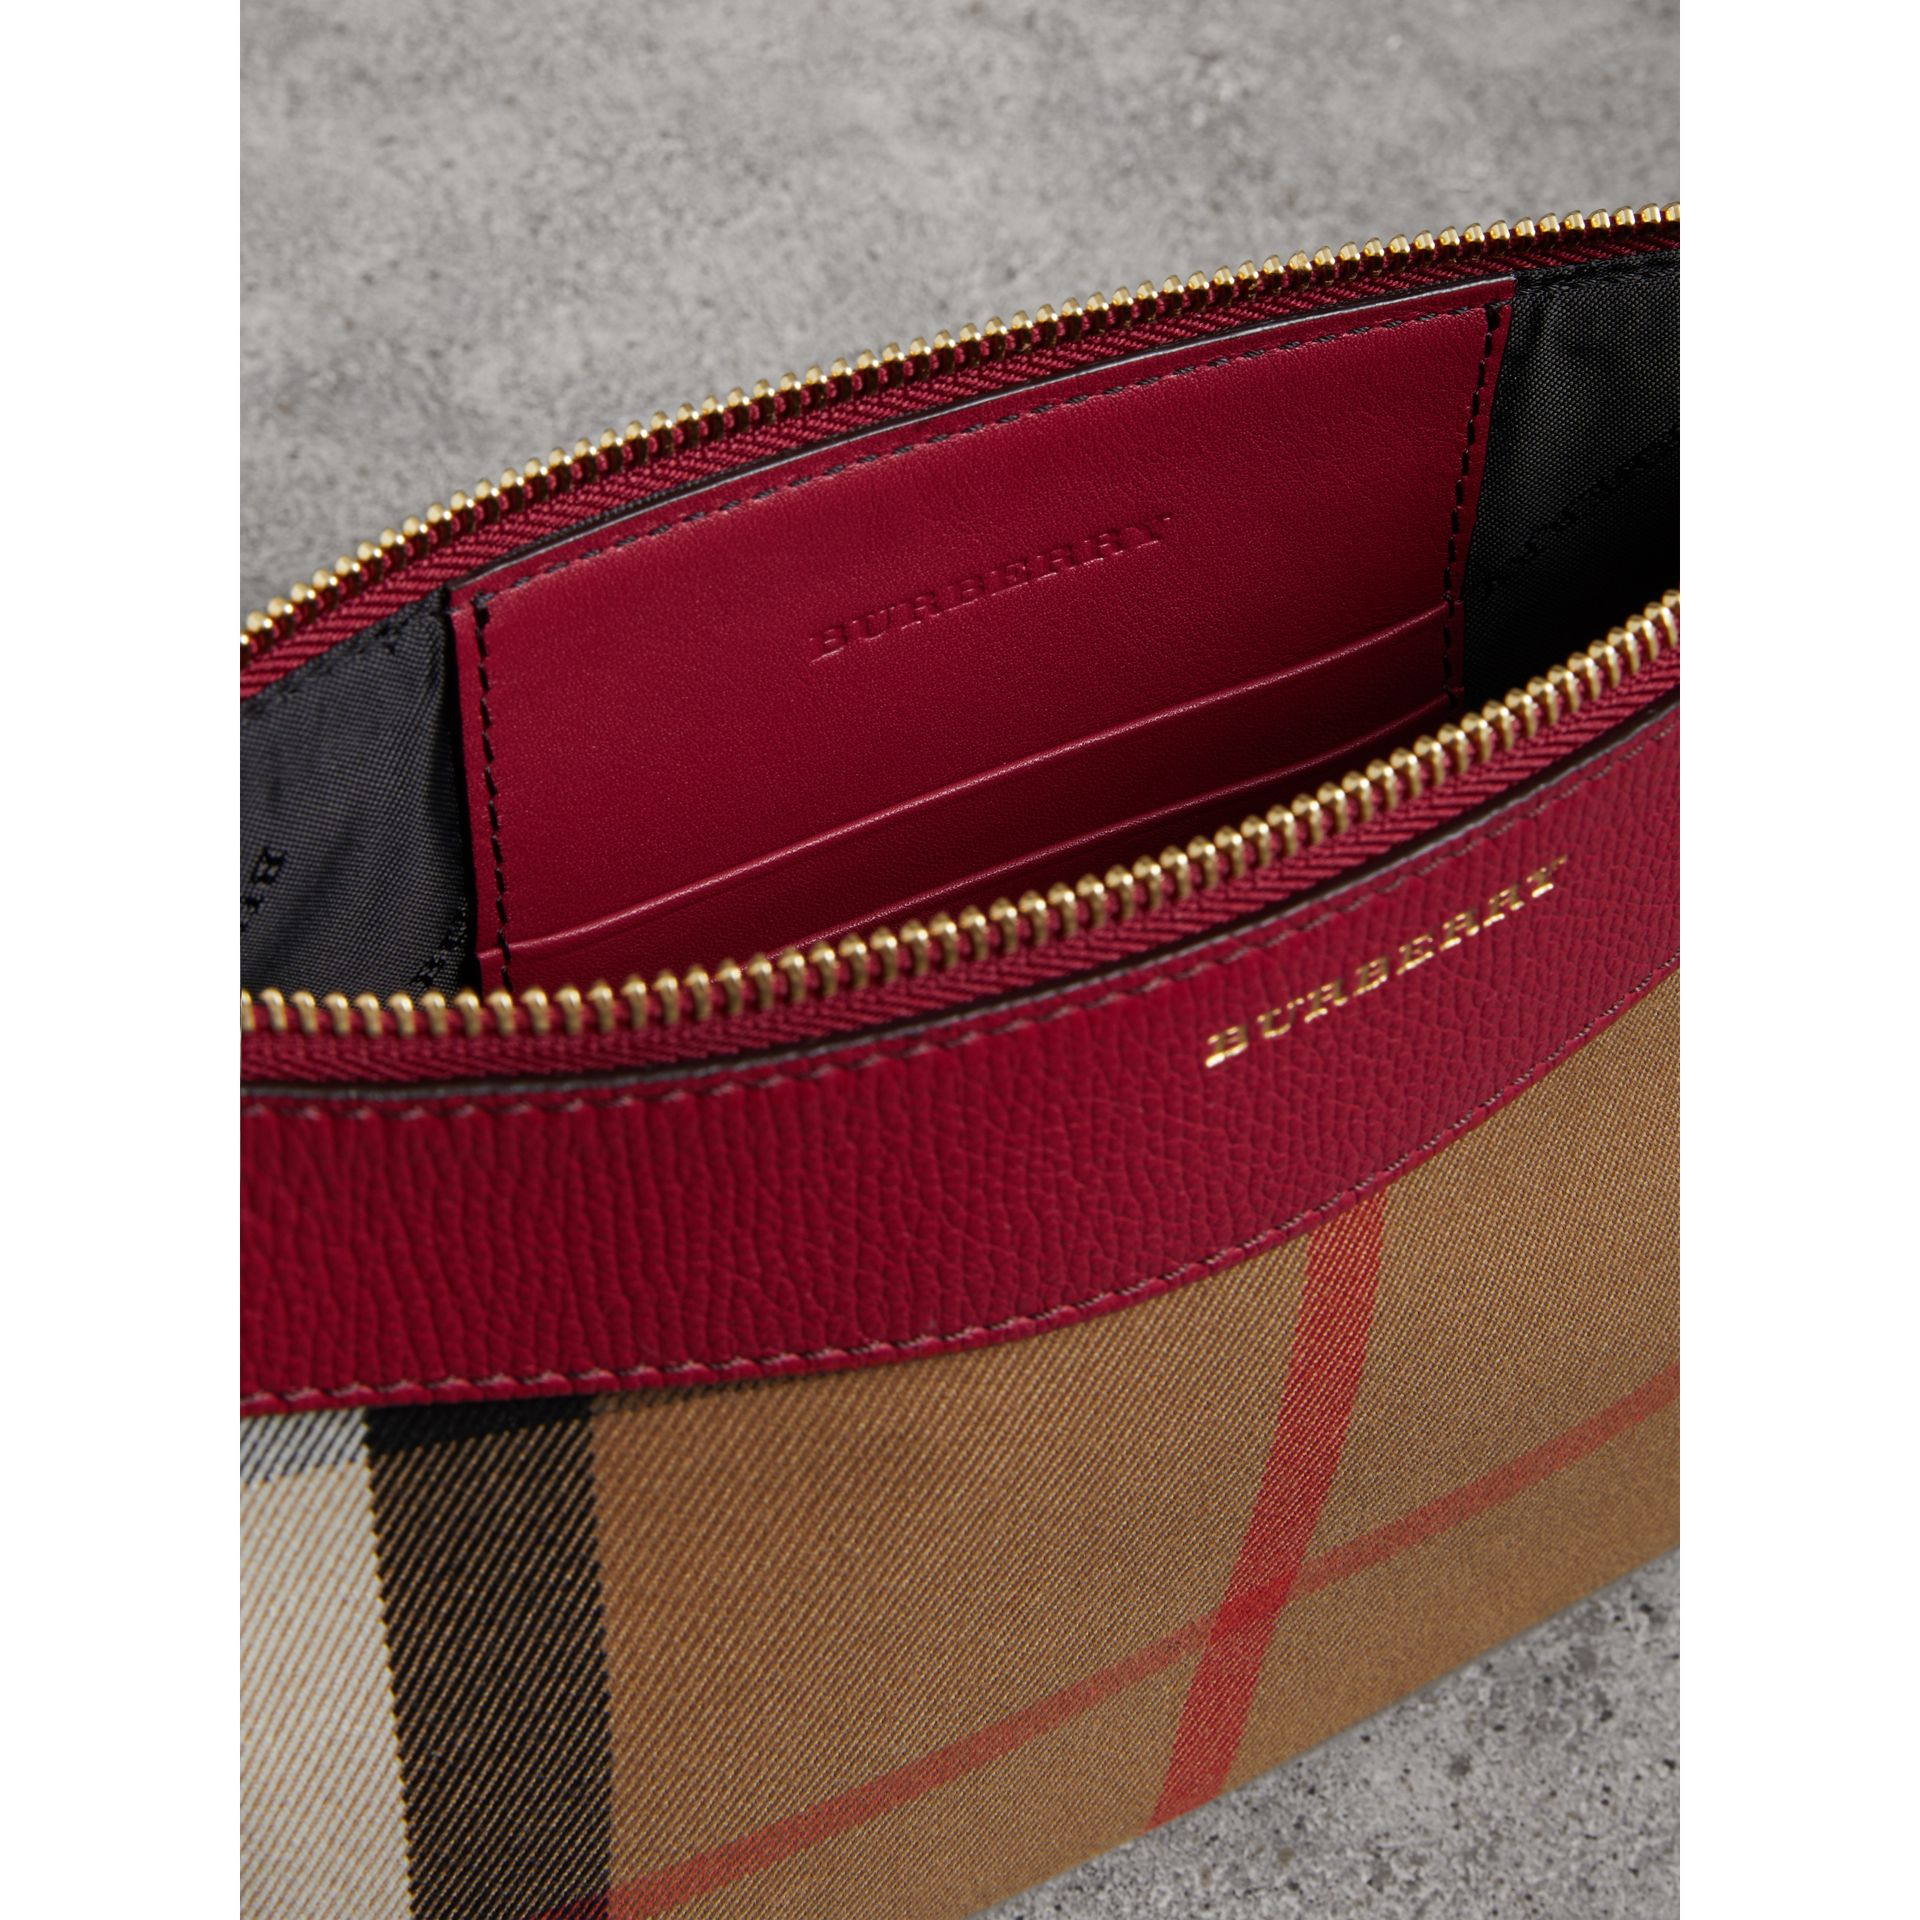 House Check and Leather Clutch Bag in Military Red - Women | Burberry Australia - gallery image 4